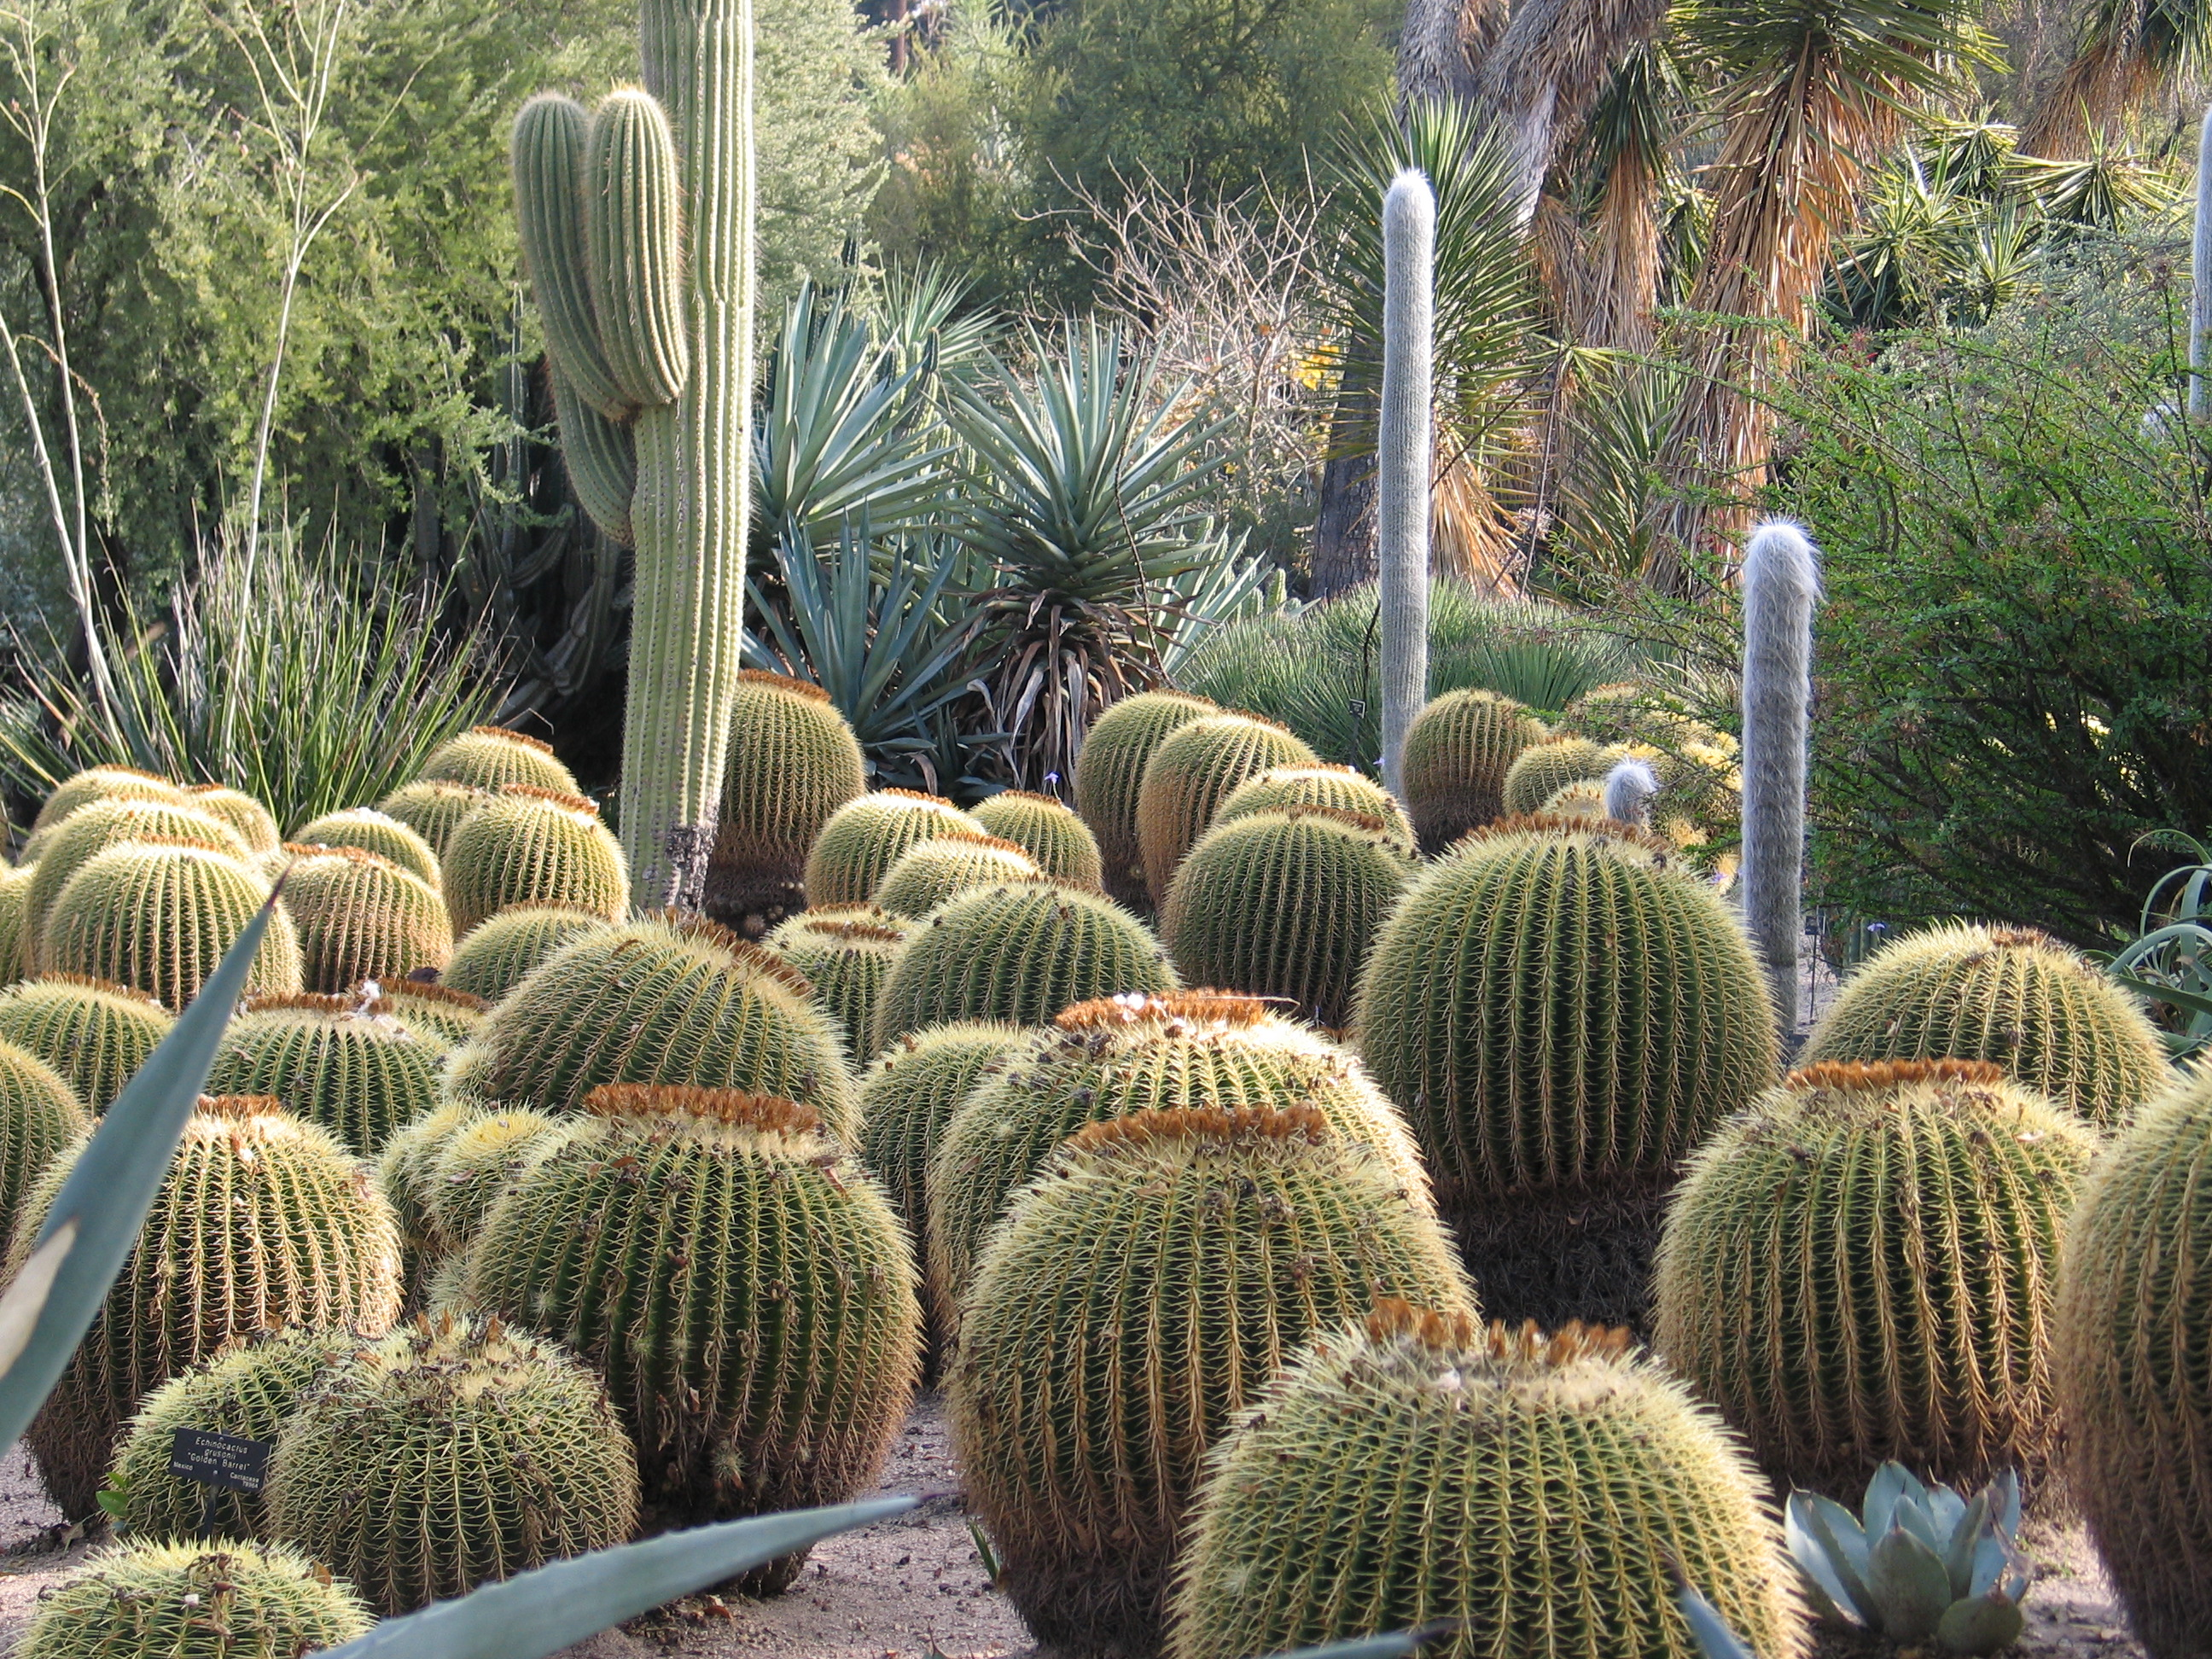 File:Desert Garden Cacti At Huntington Library